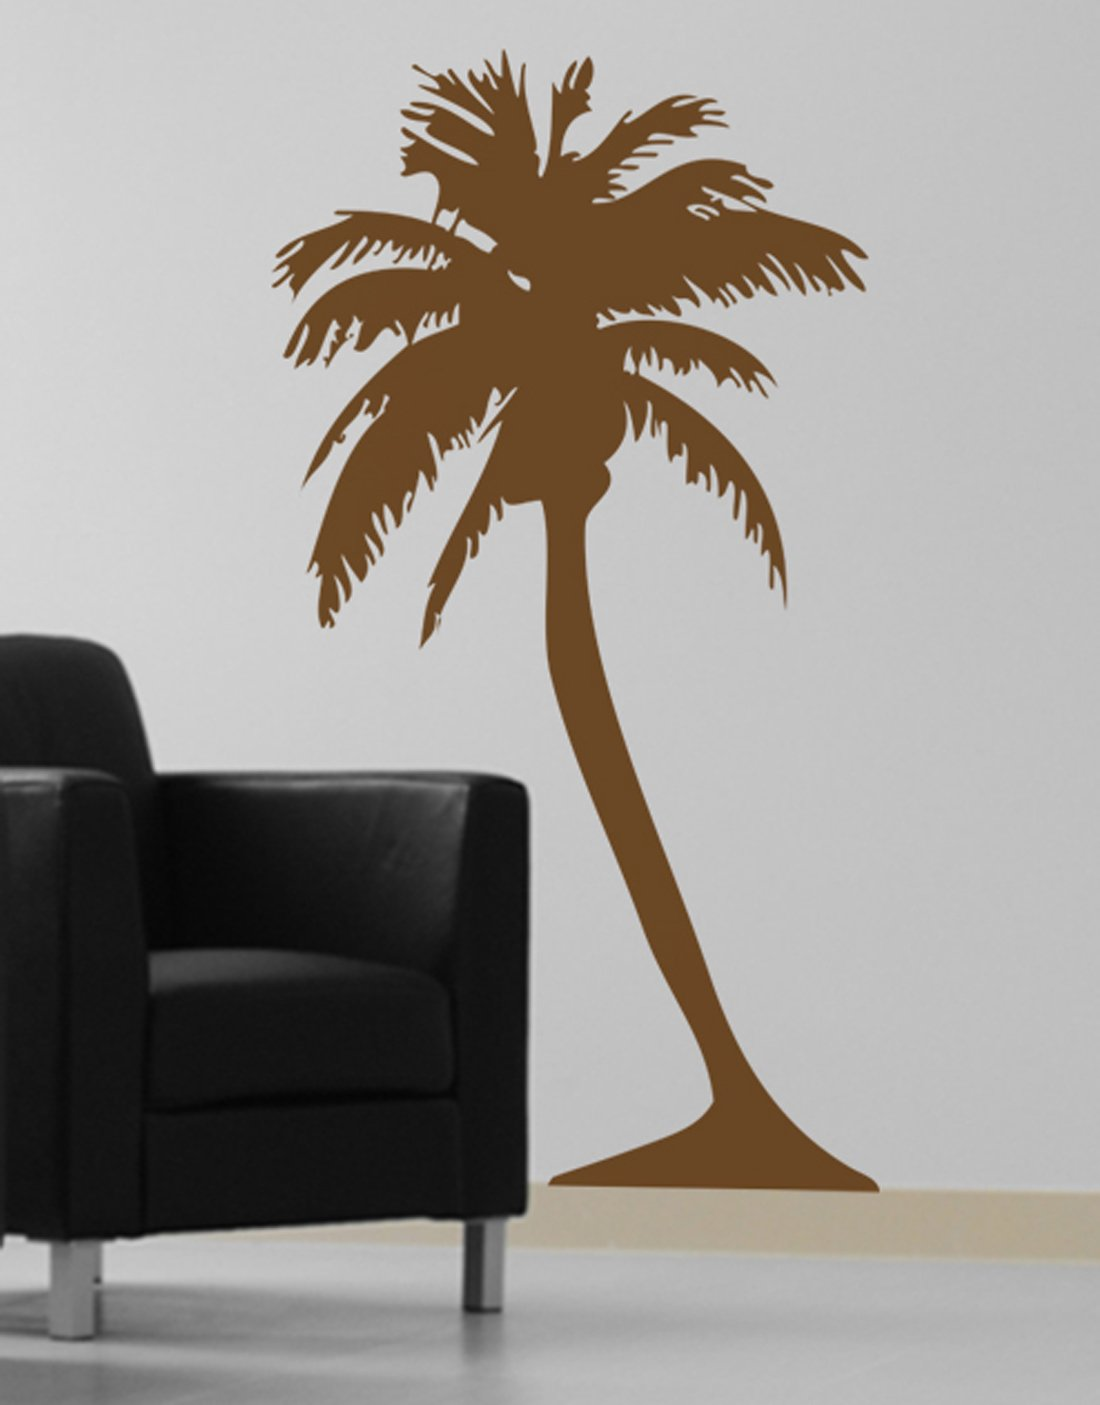 Amazon stickerbrand naturebeach house vinyl wall art big amazon stickerbrand naturebeach house vinyl wall art big palm tree wall decal sticker black 72 x 38 6ft tall easy to apply removable amipublicfo Image collections